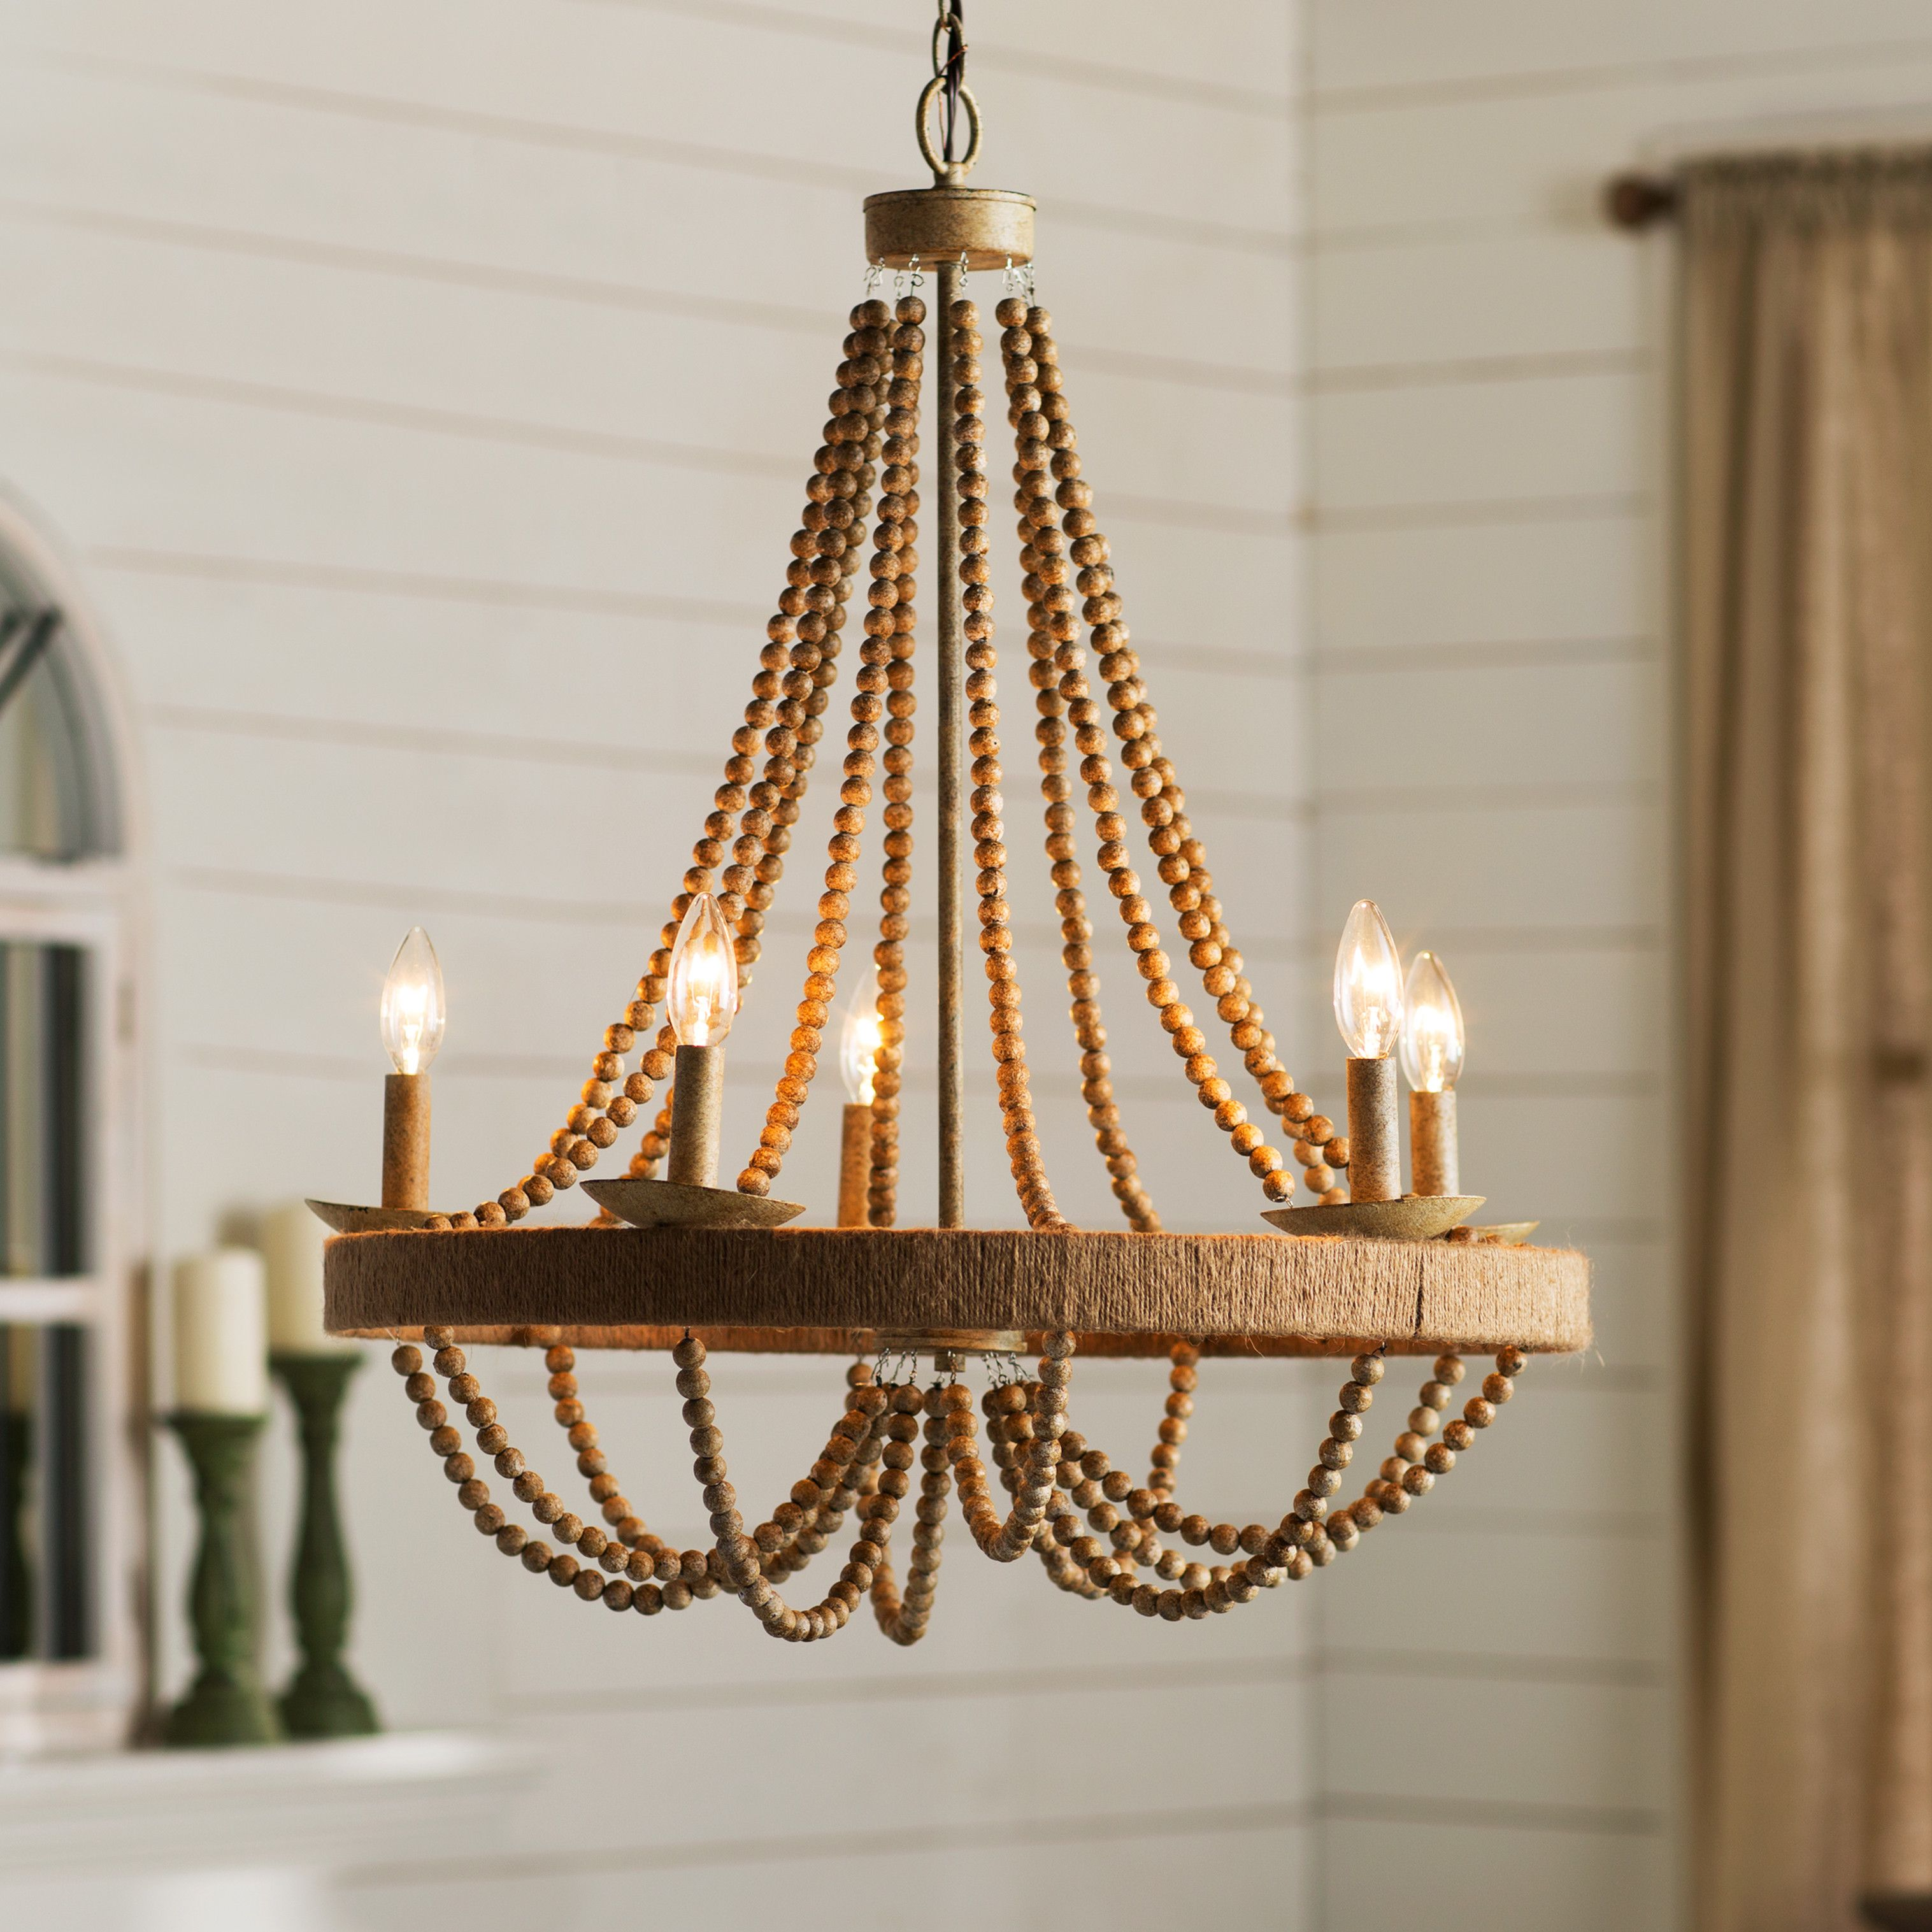 deer shades home magnificent chandeliers design chandelier ideas orb decorating lamp black